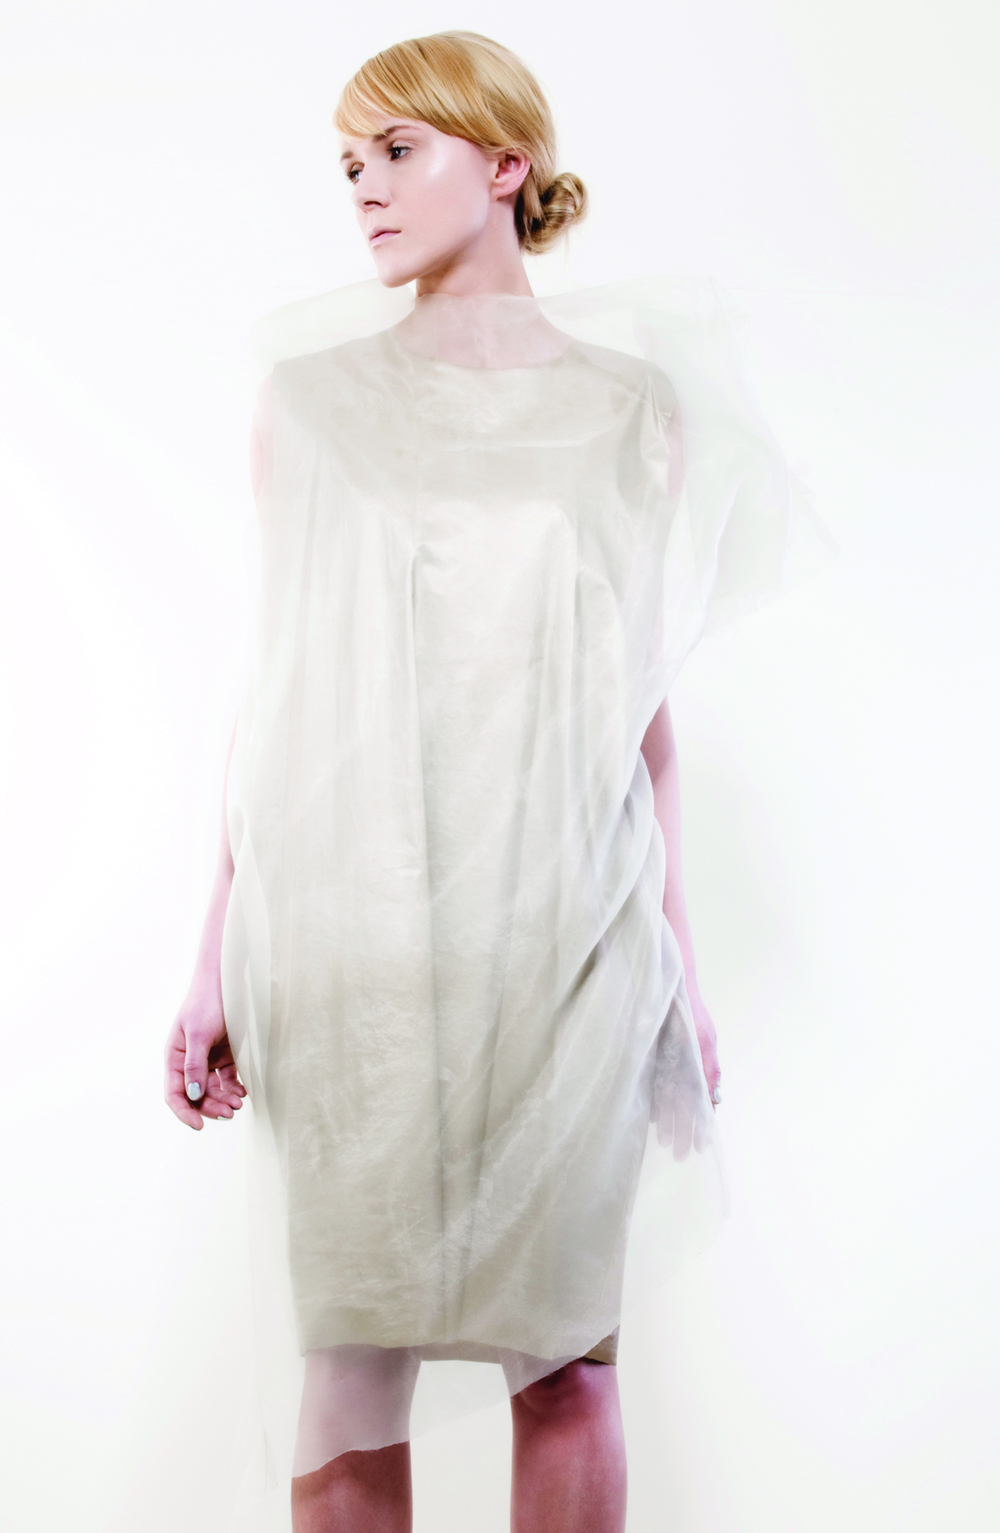 outfit-3-Gravity-and-Levitation-Spring-Summer-Collection-Isabel-Wong-Light-Green-Silk-Organza-Gold-Dress.jpg